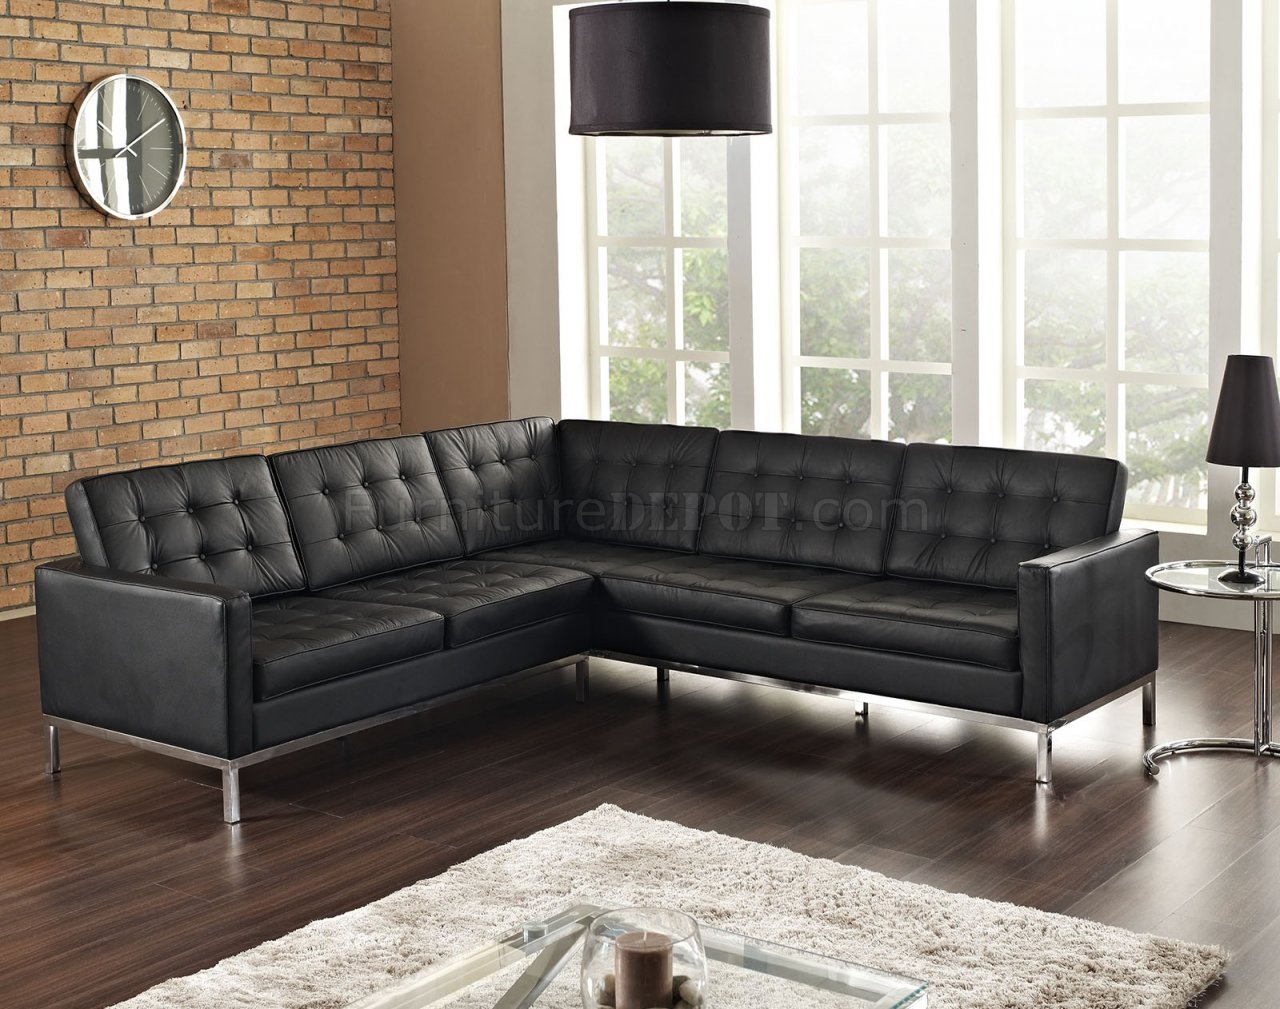 Loft L Shaped Sectional Sofa In Black Leather By Modway